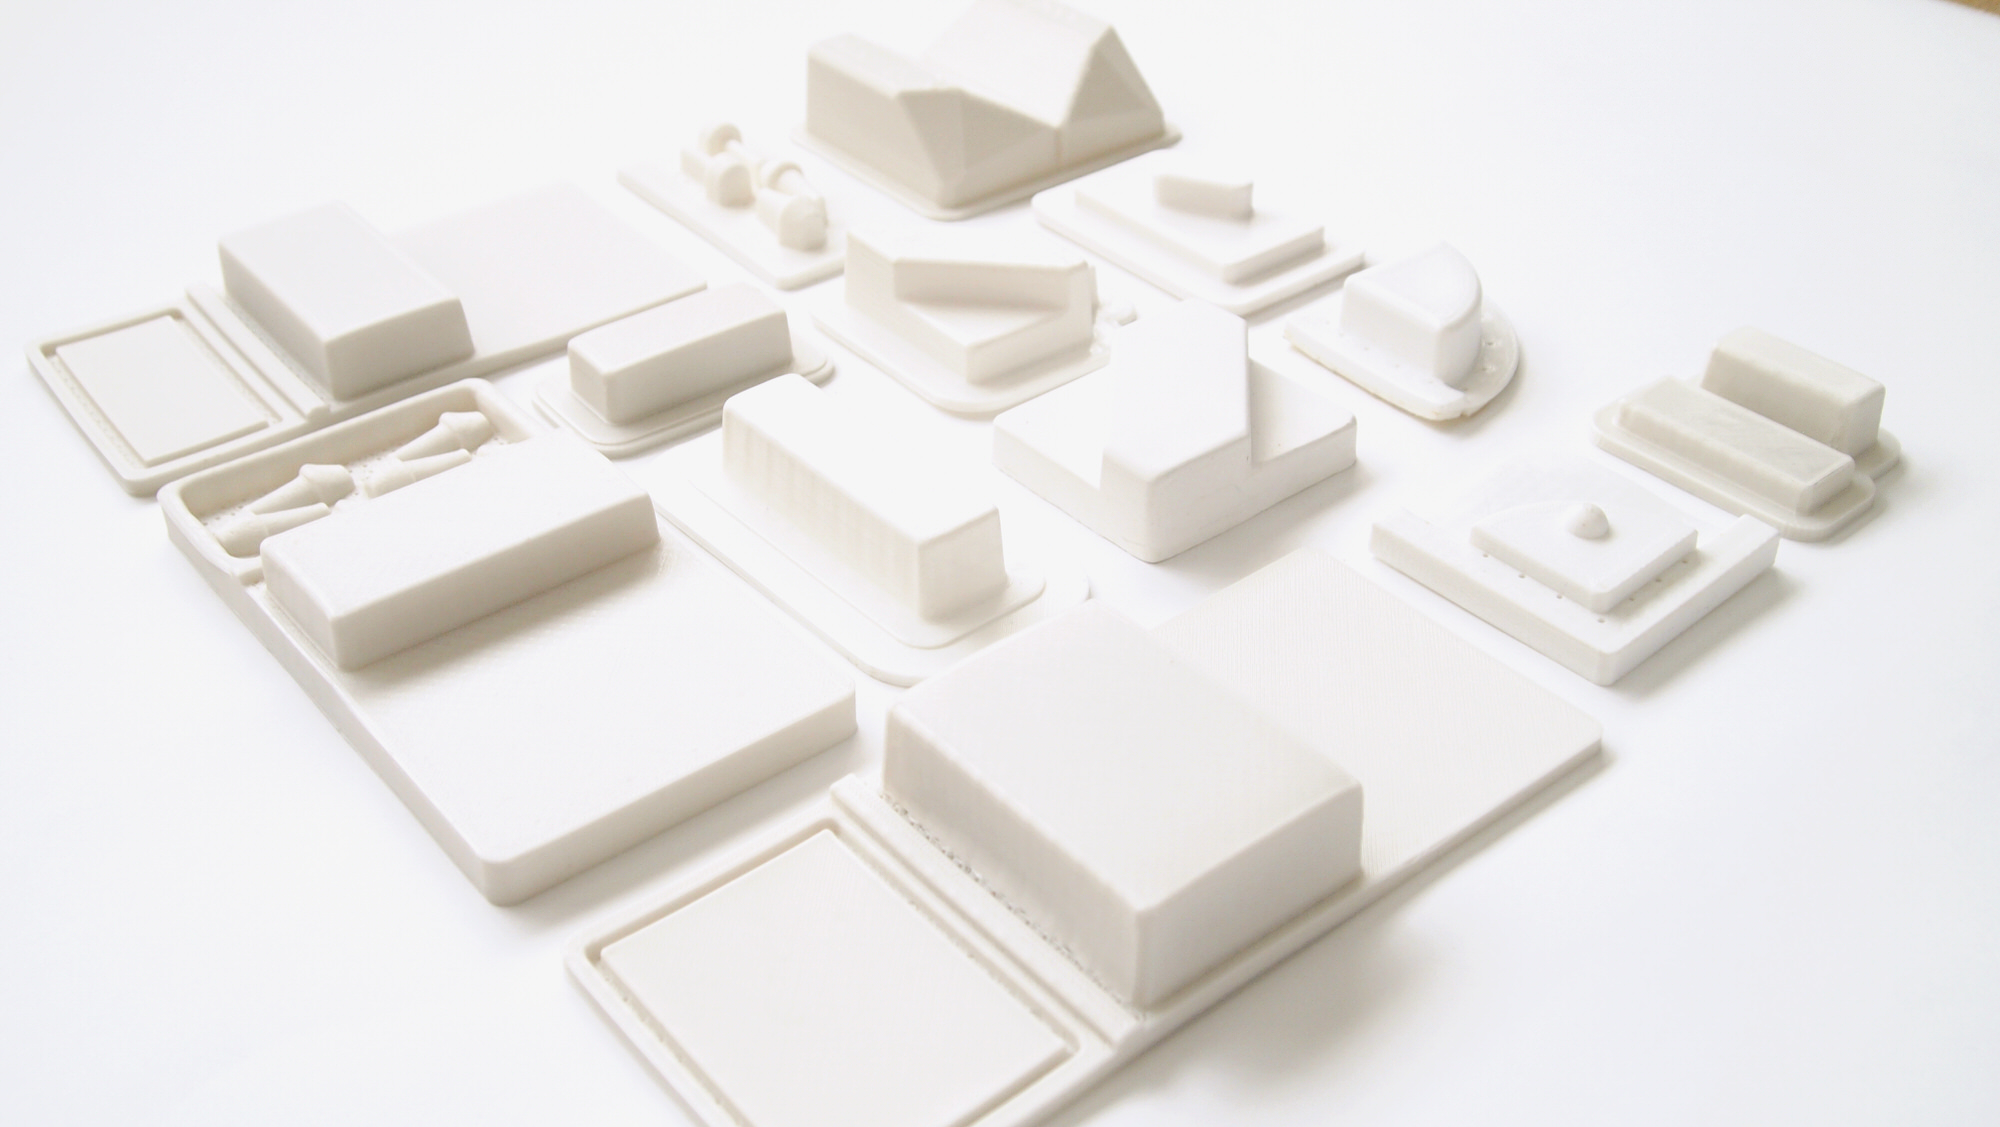 3D Printed Models for Vacuum Forming Packaging Designs